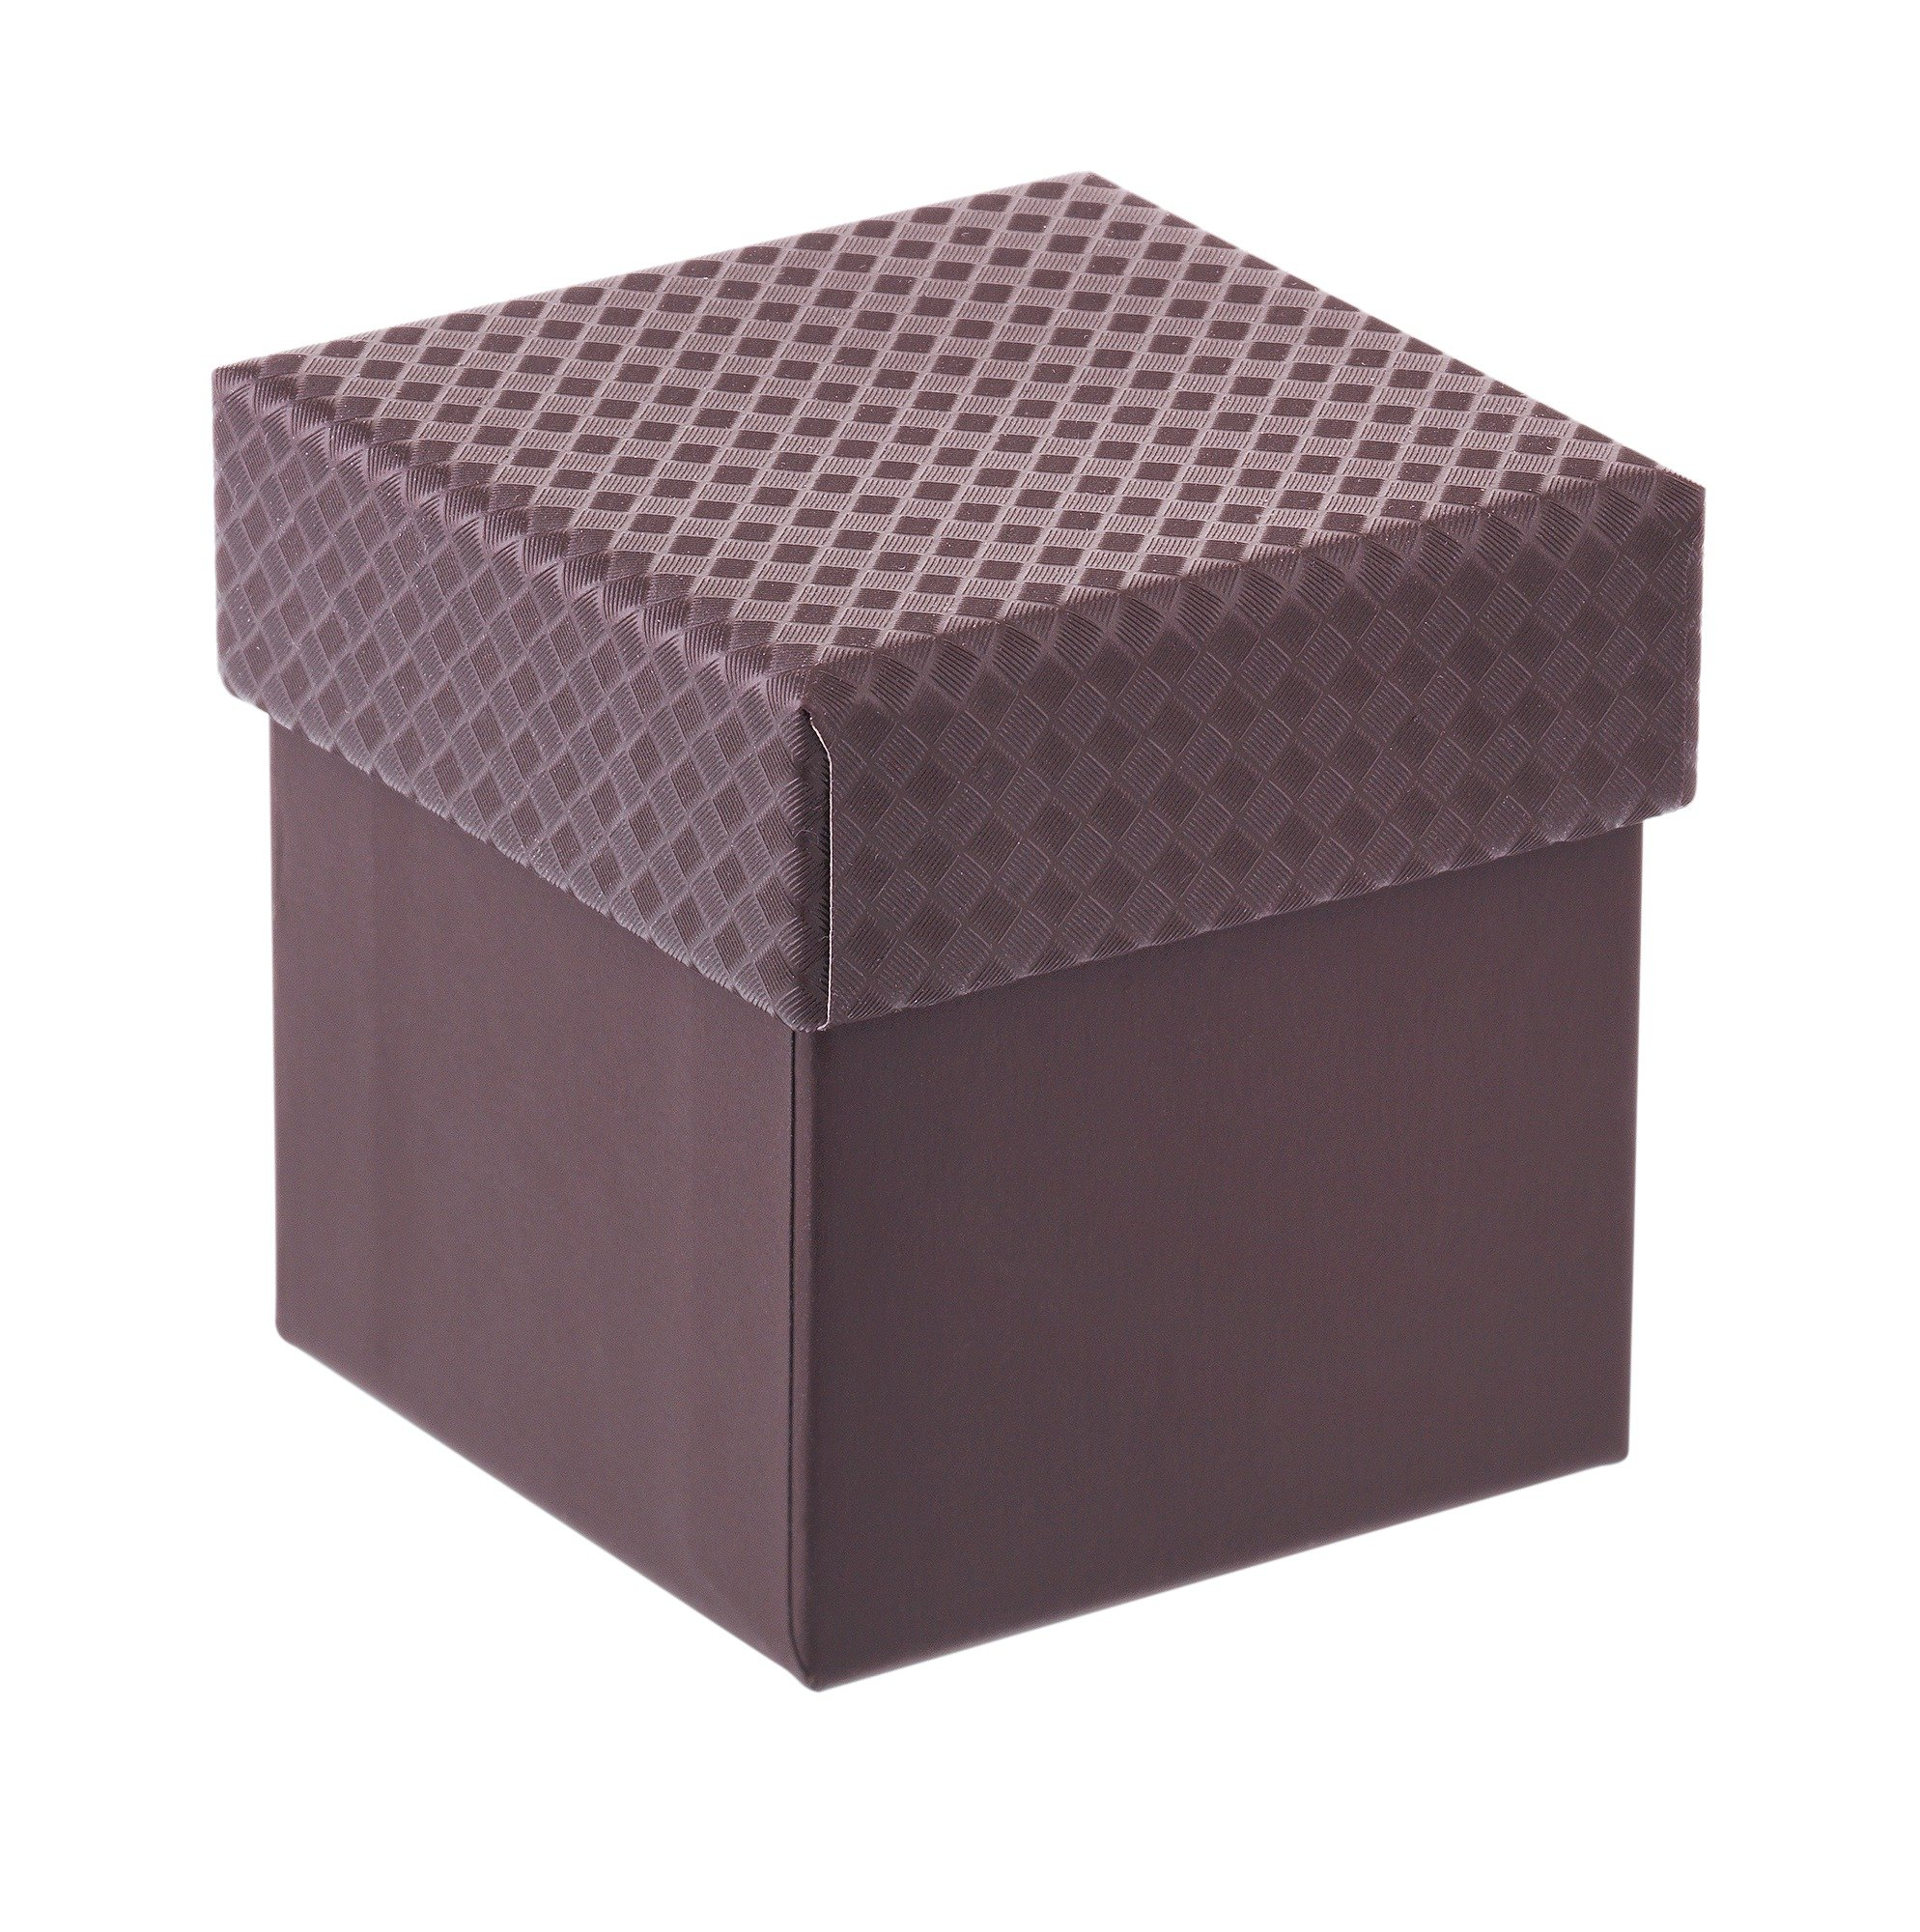 Image of Chocolate Brown - Mini - Gift Box with Internal Black Fitment